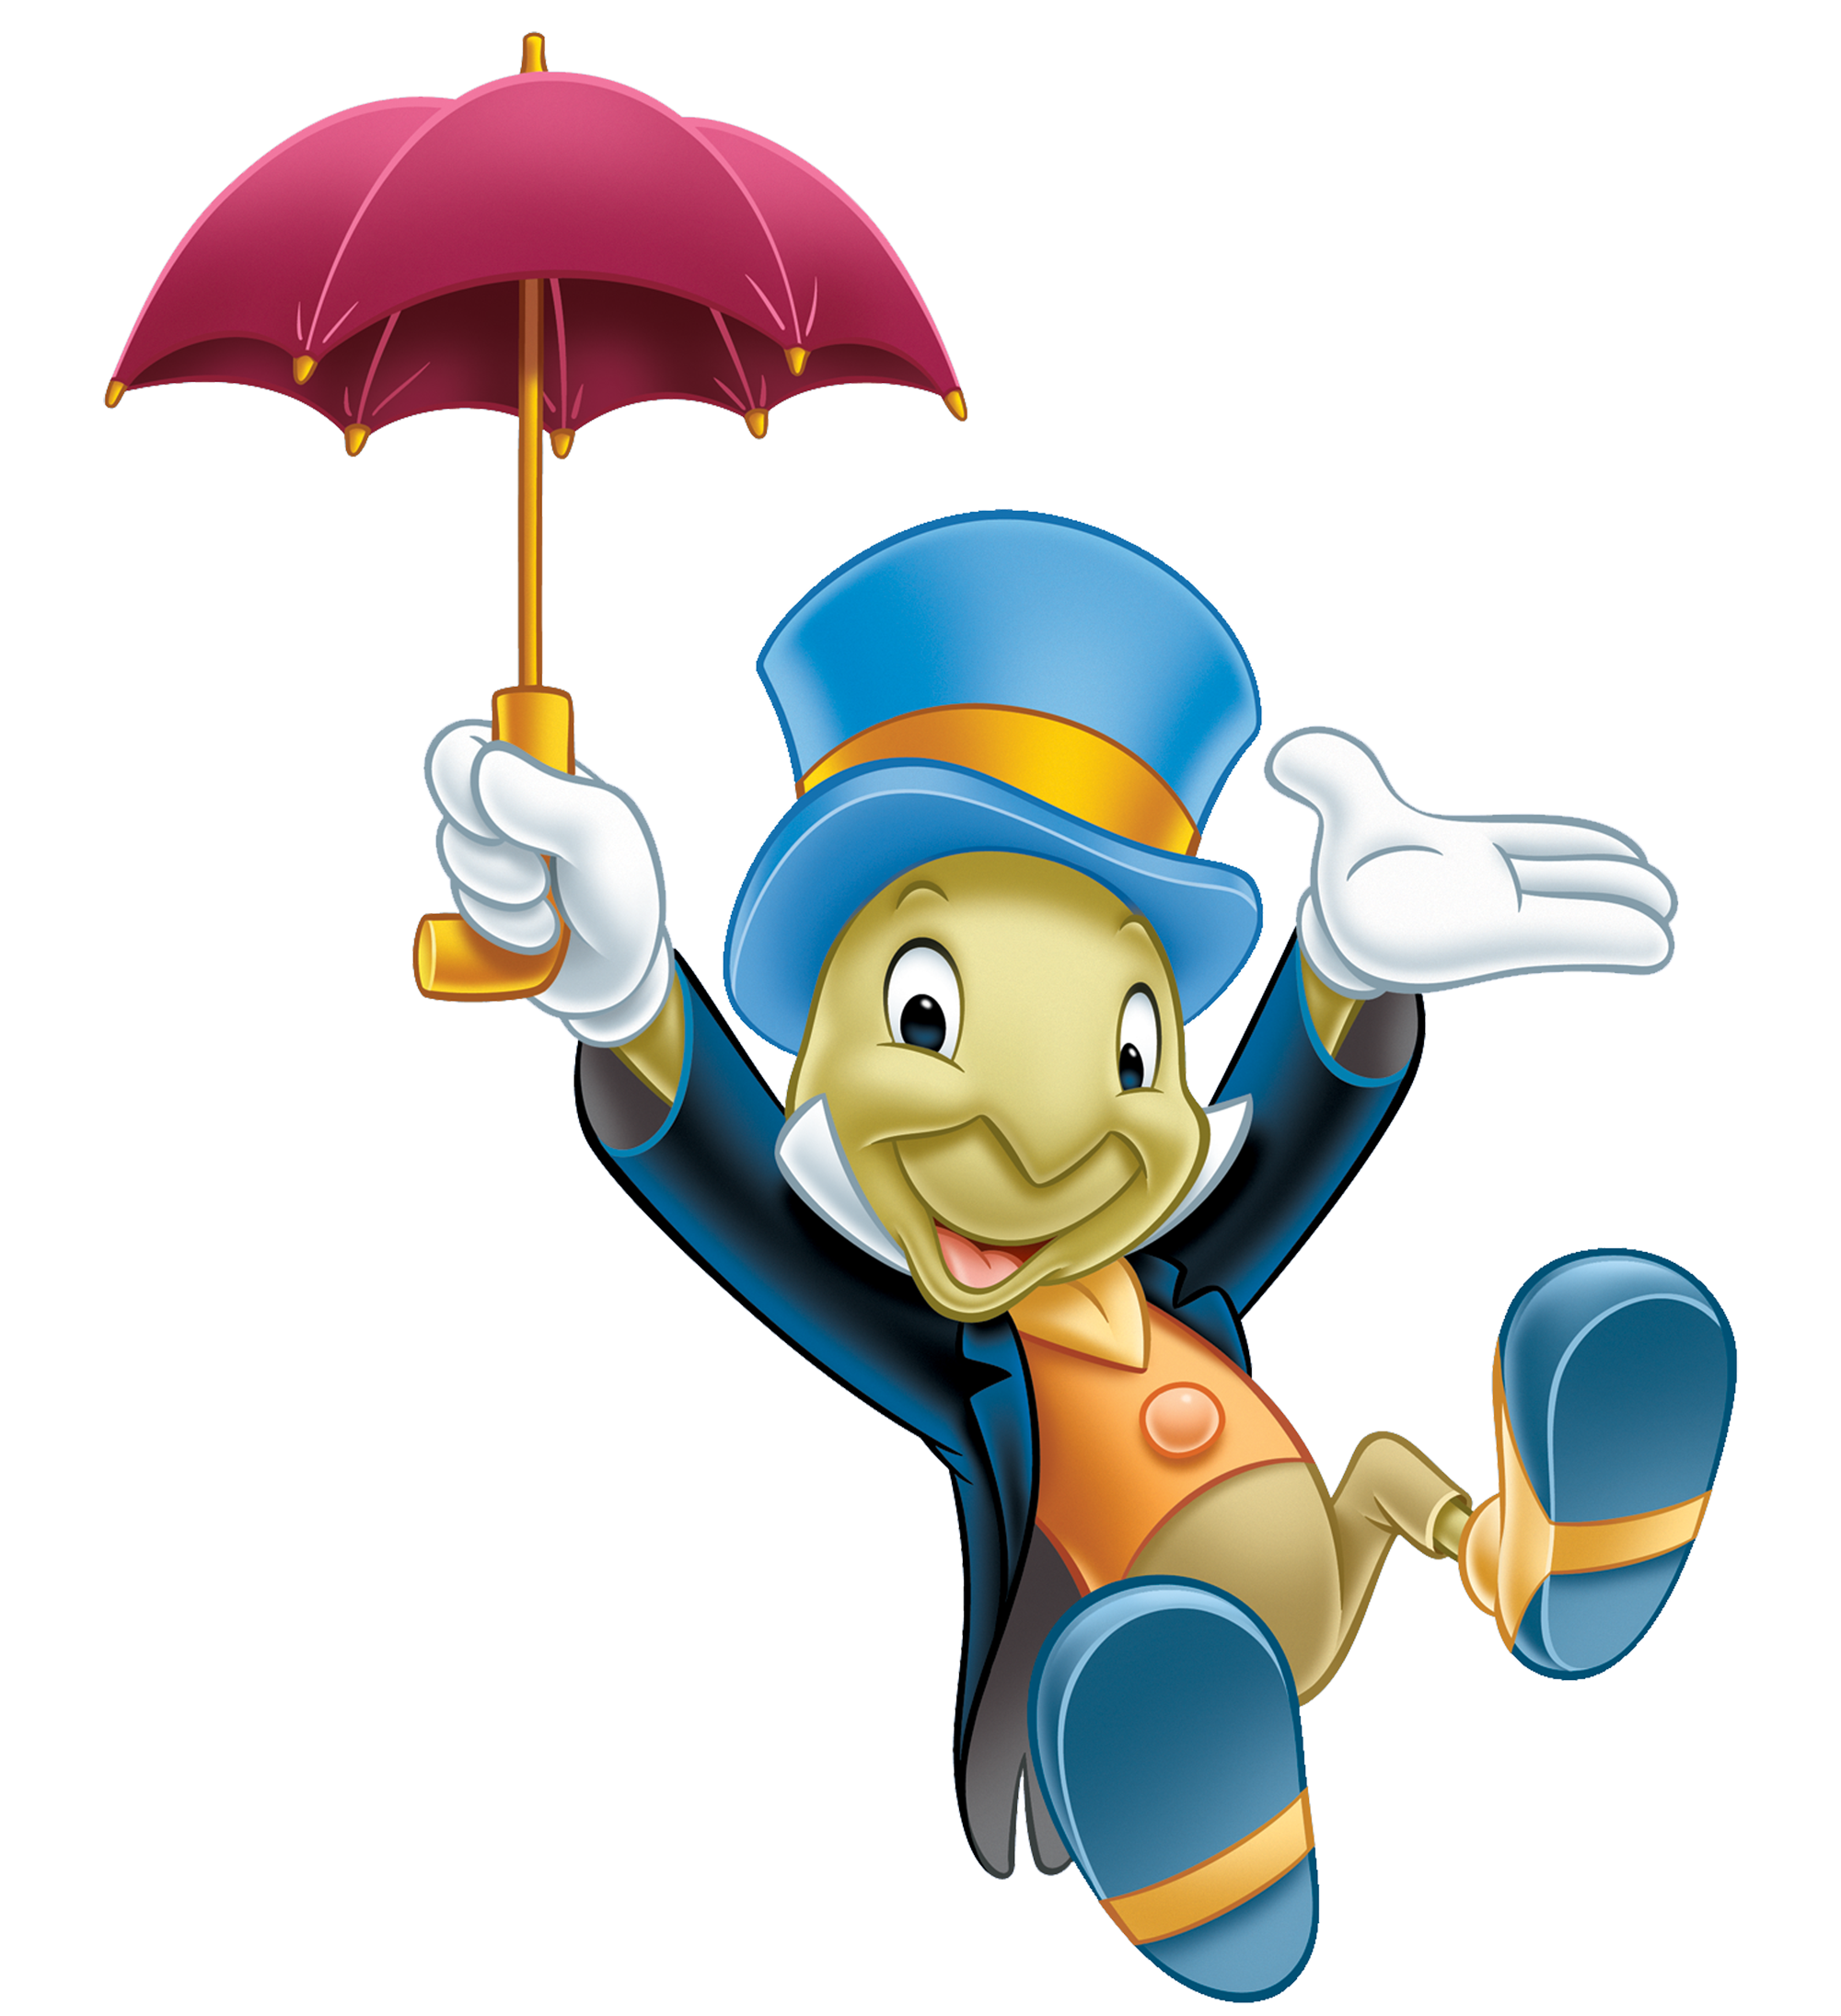 Jiminy Cricket Is A Small Anthropomorphic Cricket And The Deuteragonist Of The 1940 Disney Animated Feature Fil Disney Cartoons Disney Pictures Disney Clipart